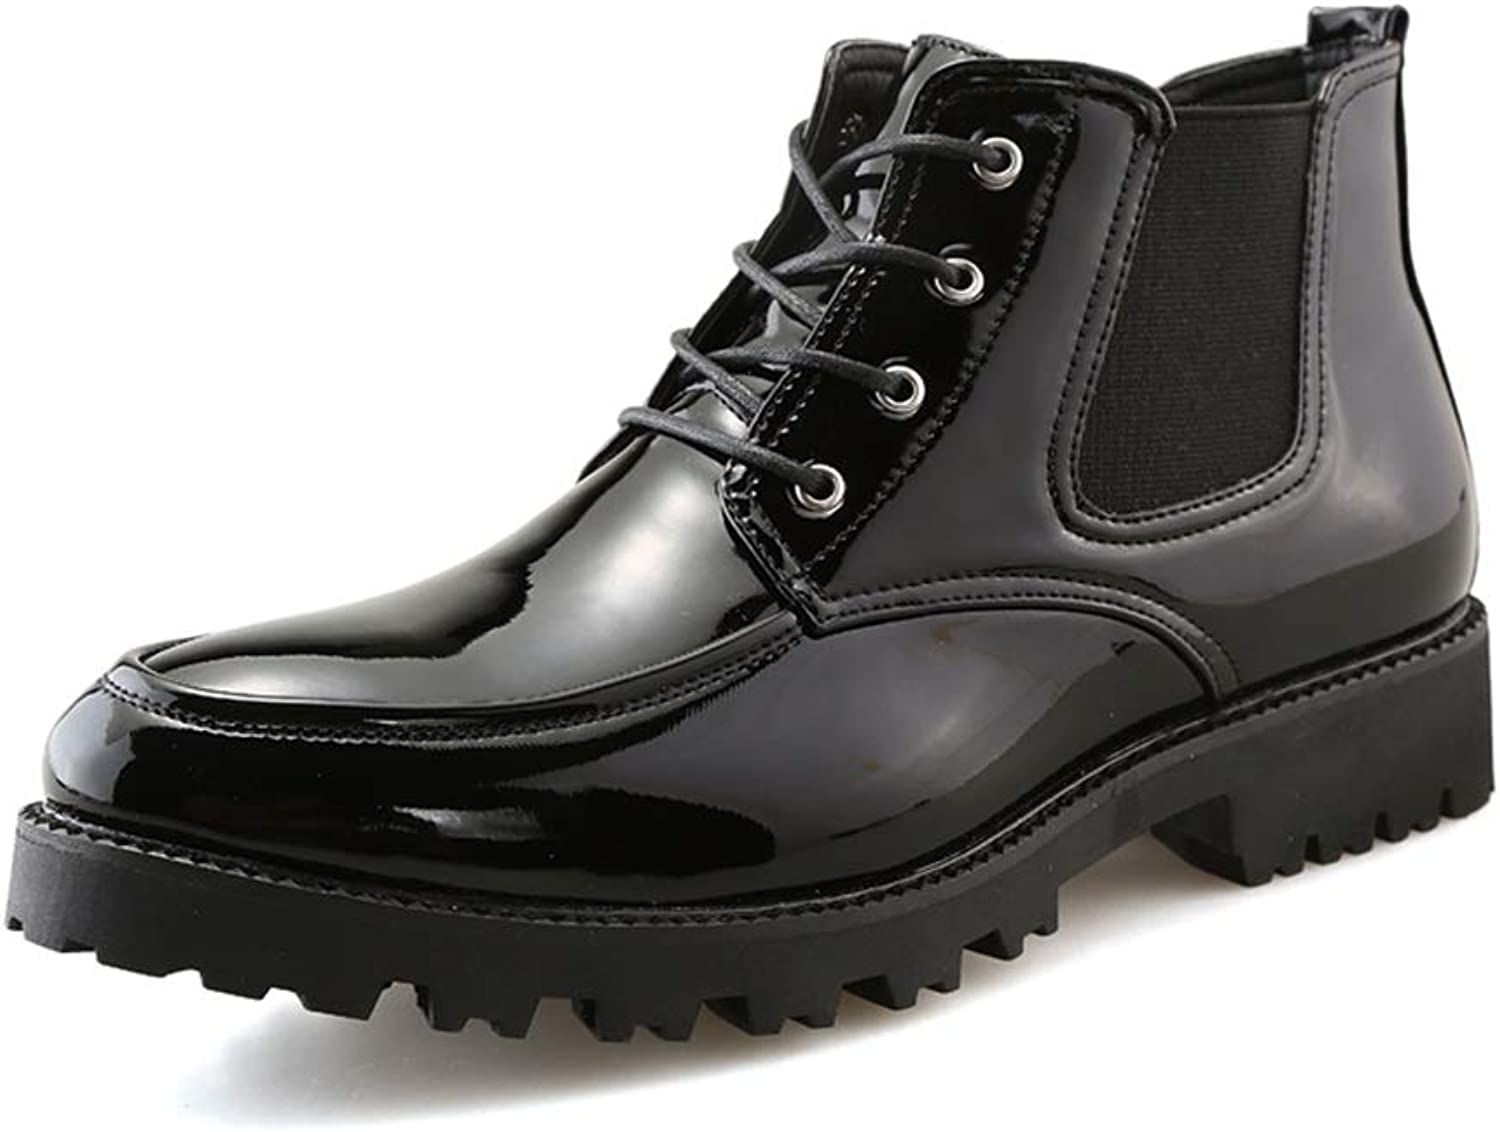 BND-SHOES ,Men's Fashion Ankle Boots Casual Hit color Round Top Waterproof Outsole British Style shoes Durable,Stand Wear and Tear (color   Warm Black, Size   6 UK)